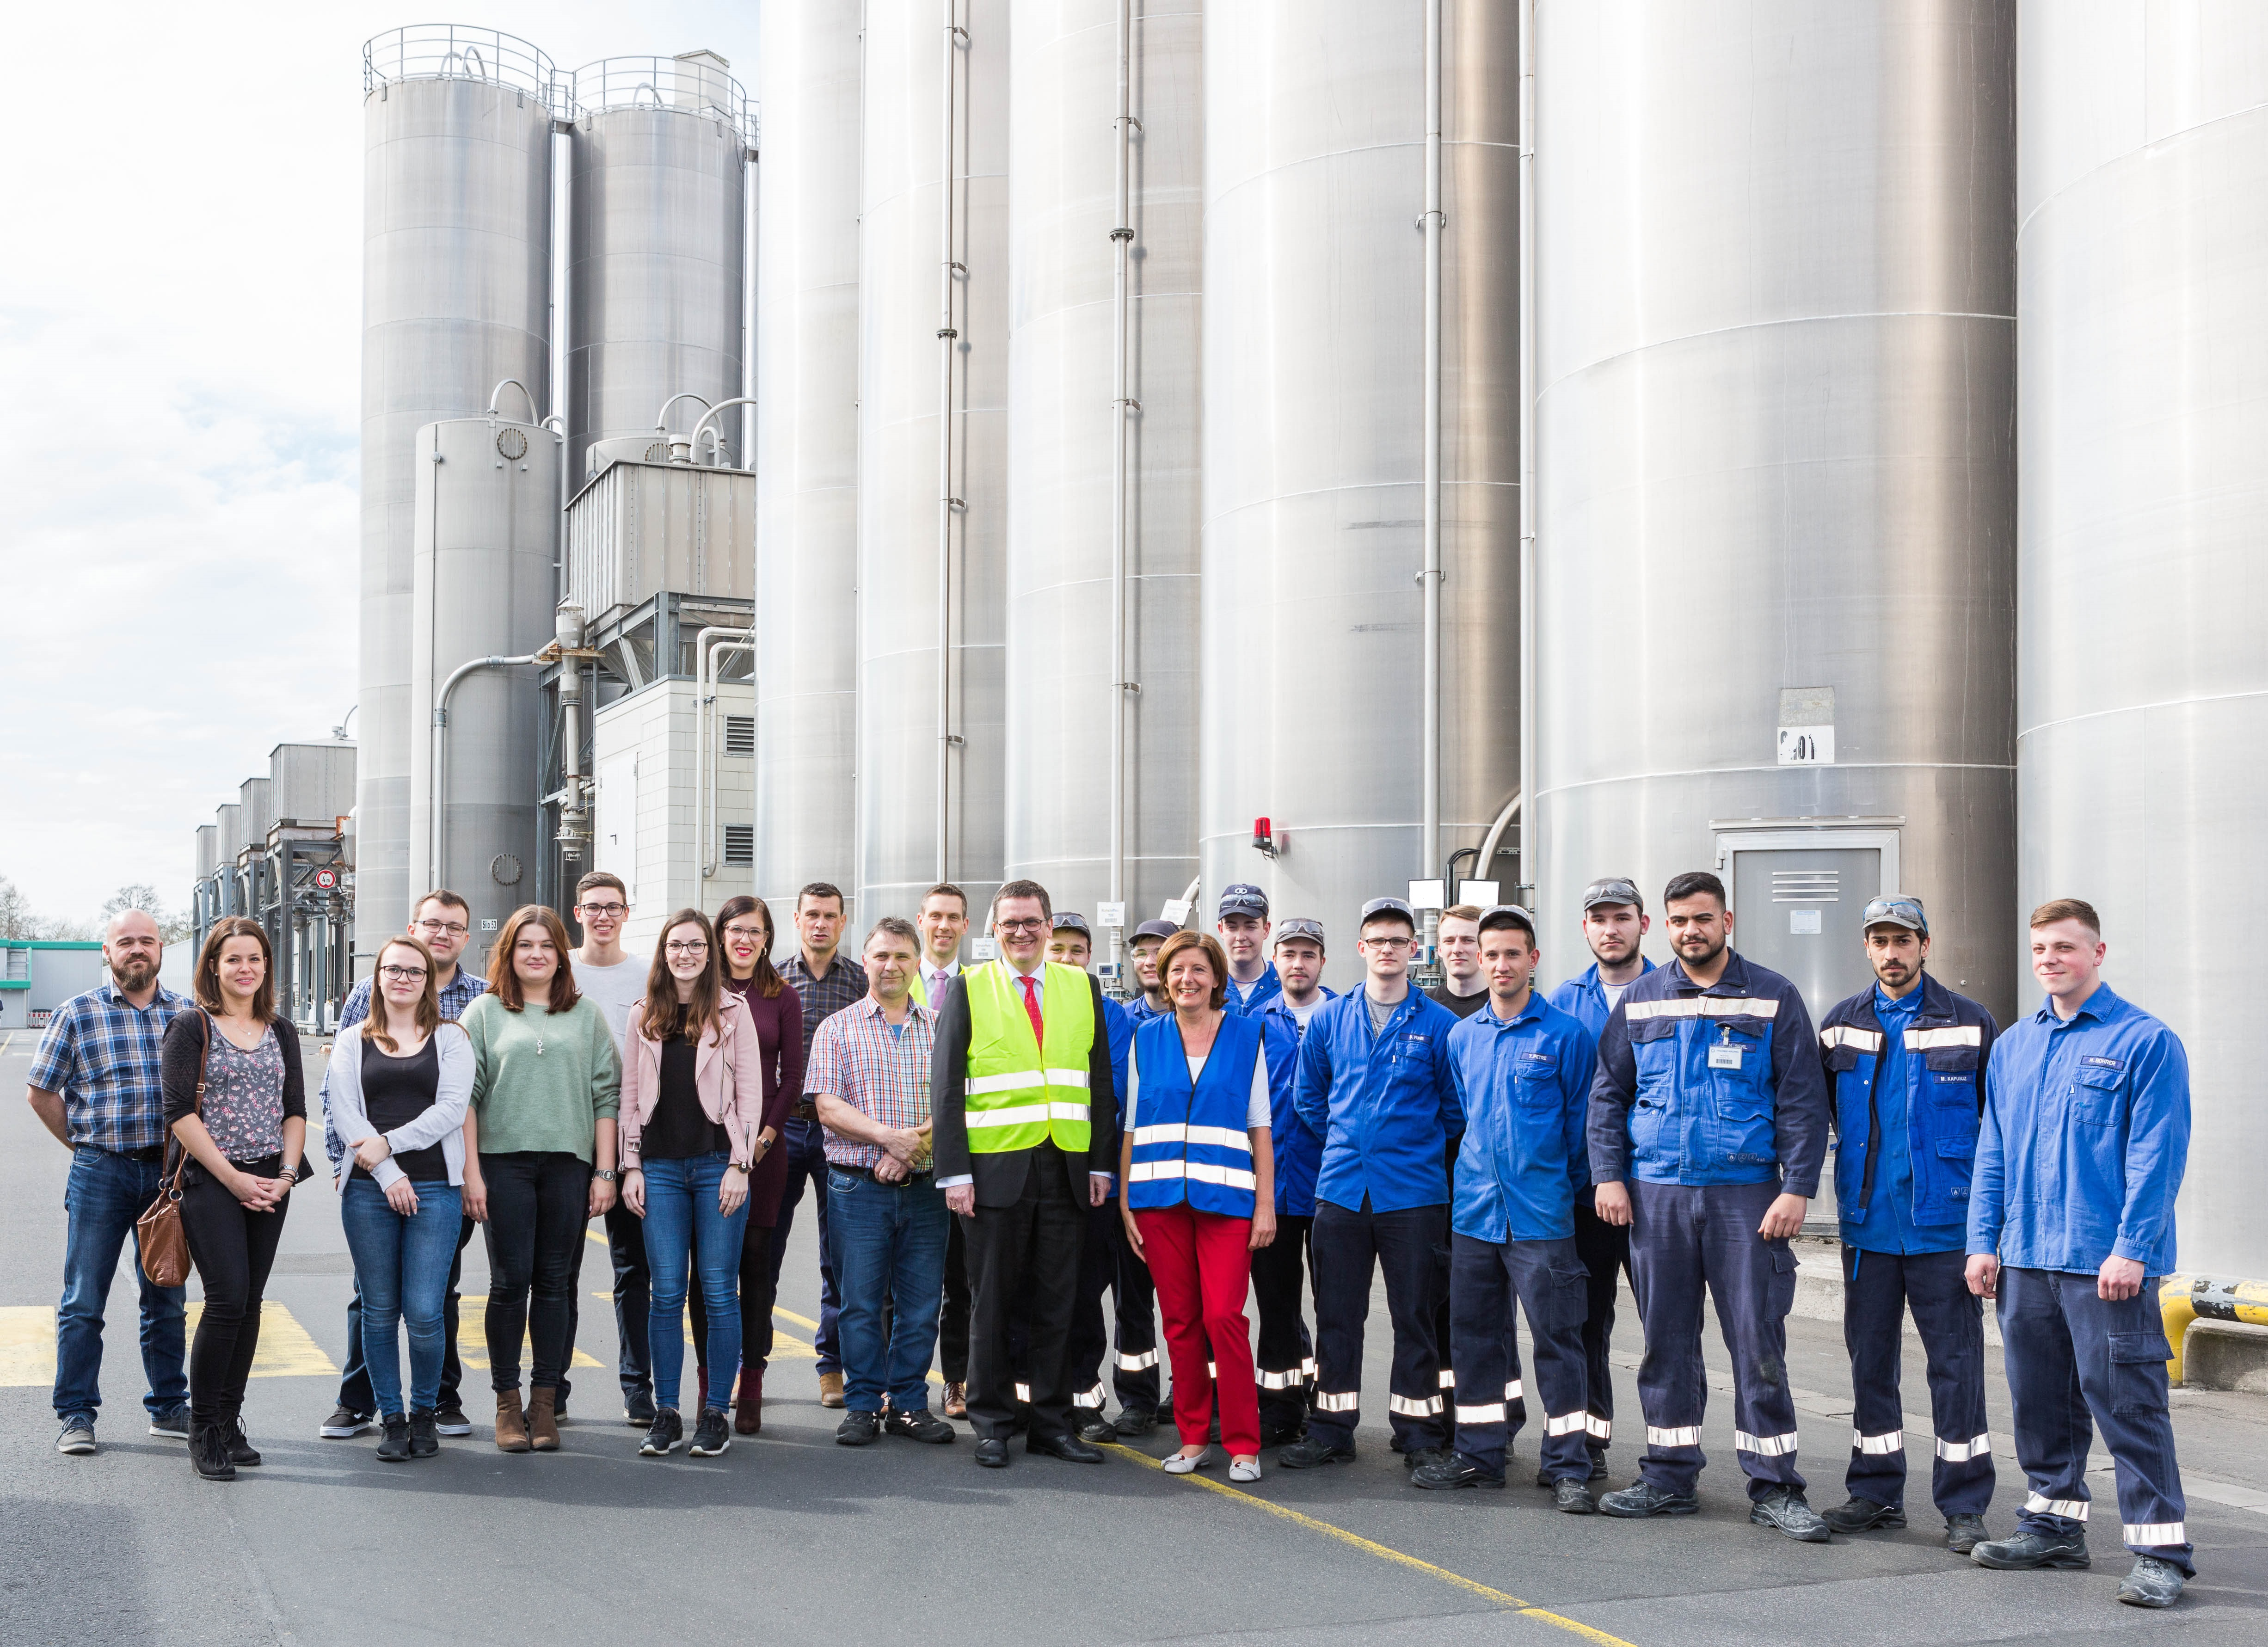 State Premier Malu Dreyer together with Dr. Gerald Hauf, as well as apprentices and trainers from the Polymer-Group.